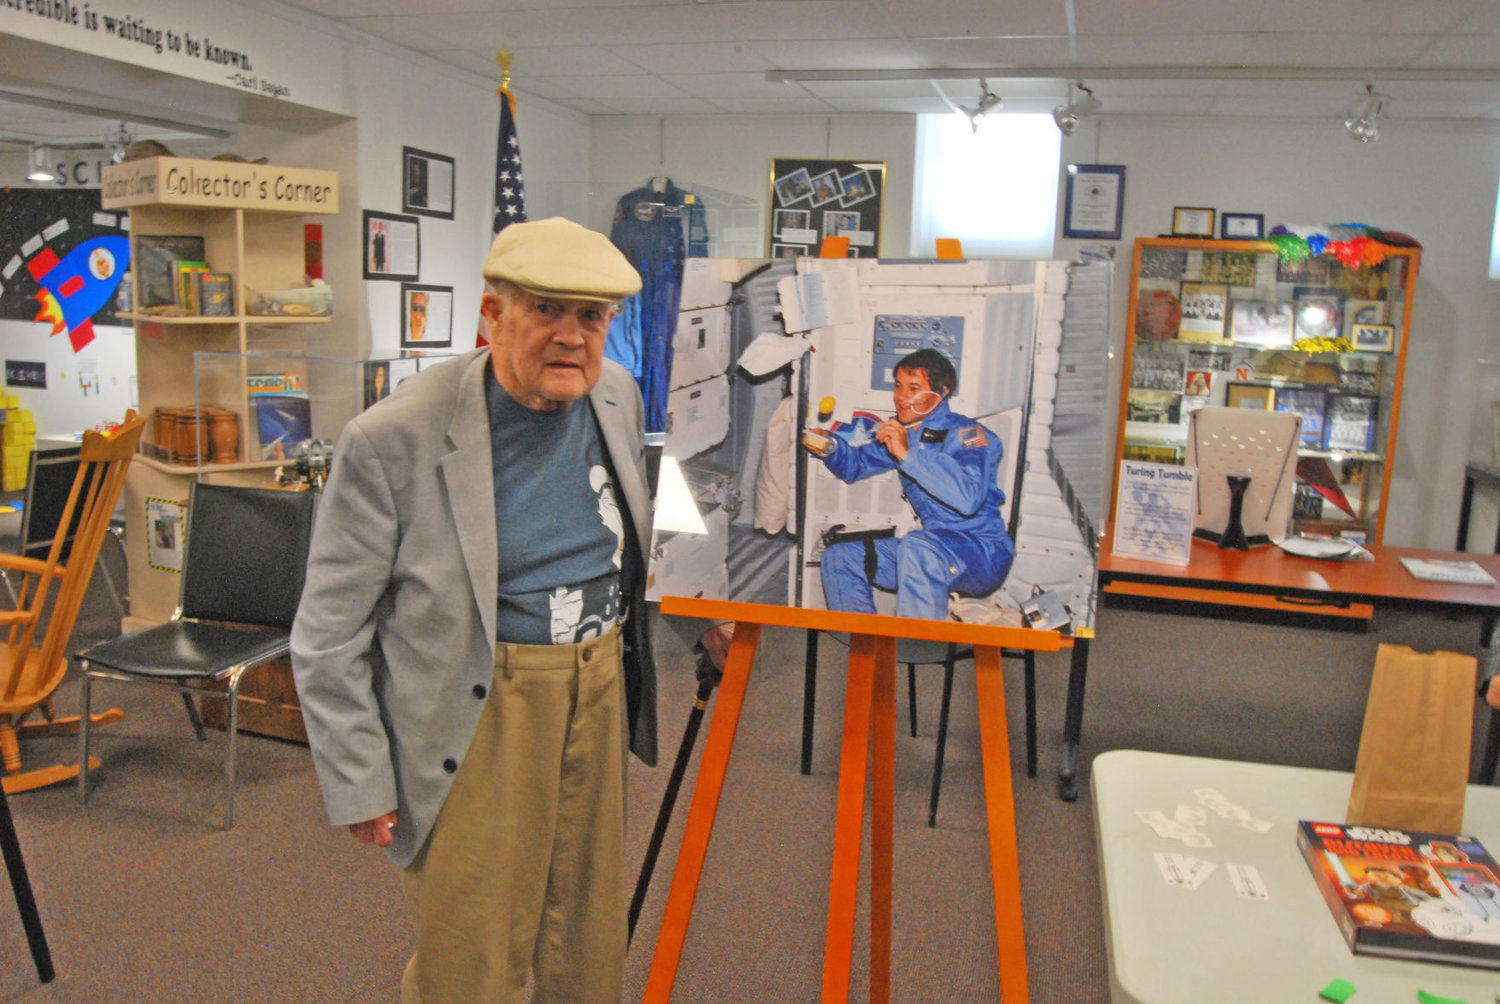 Retired astronaut Joe Allen stands next to a photo of himself from a 1980s space shuttle flight at the Carnegie Museum of Montgomery County. Allen visited the museum to help celebrate the 50th anniversary of the moon landing.